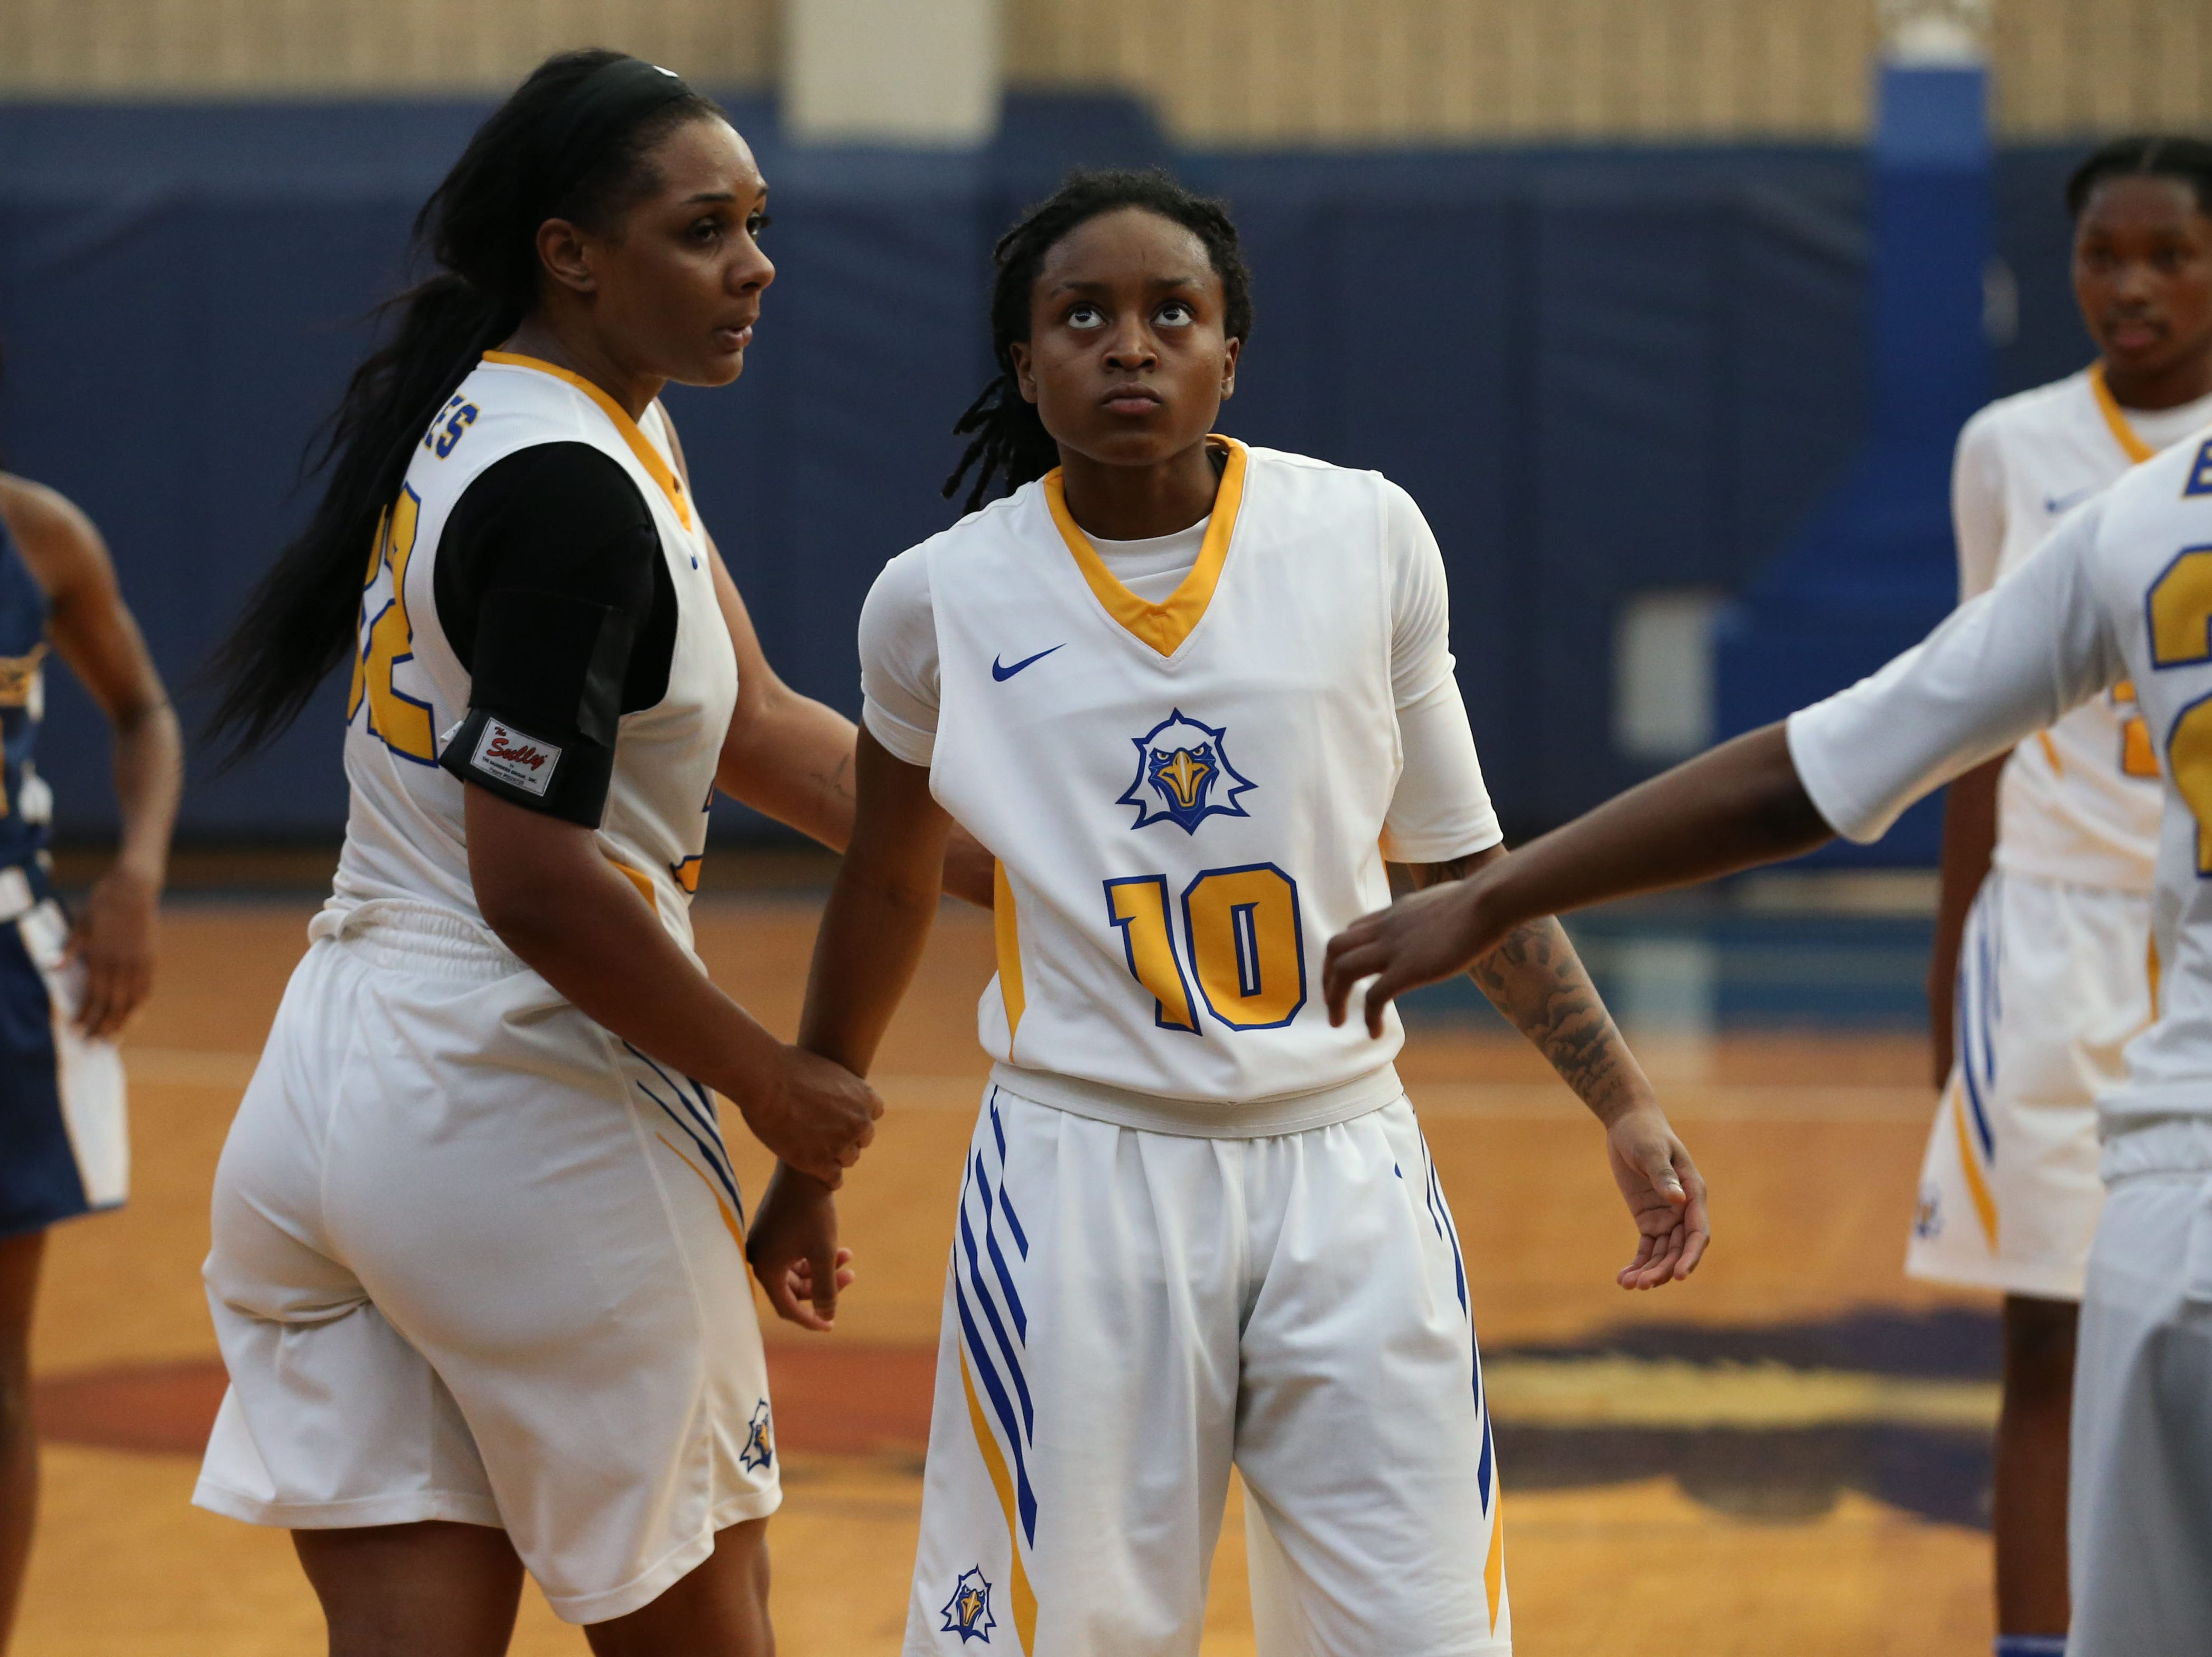 Tallahassee Community College Eagles guard Tameria Johnson (10) receives high-fives and encouragement from teammates after missing a free throw. The Tallahassee Community College Eagles host the Gulf Coast State College Commodores in a conference match-up in the Eagledome, Saturday, Jan. 5, 2019.